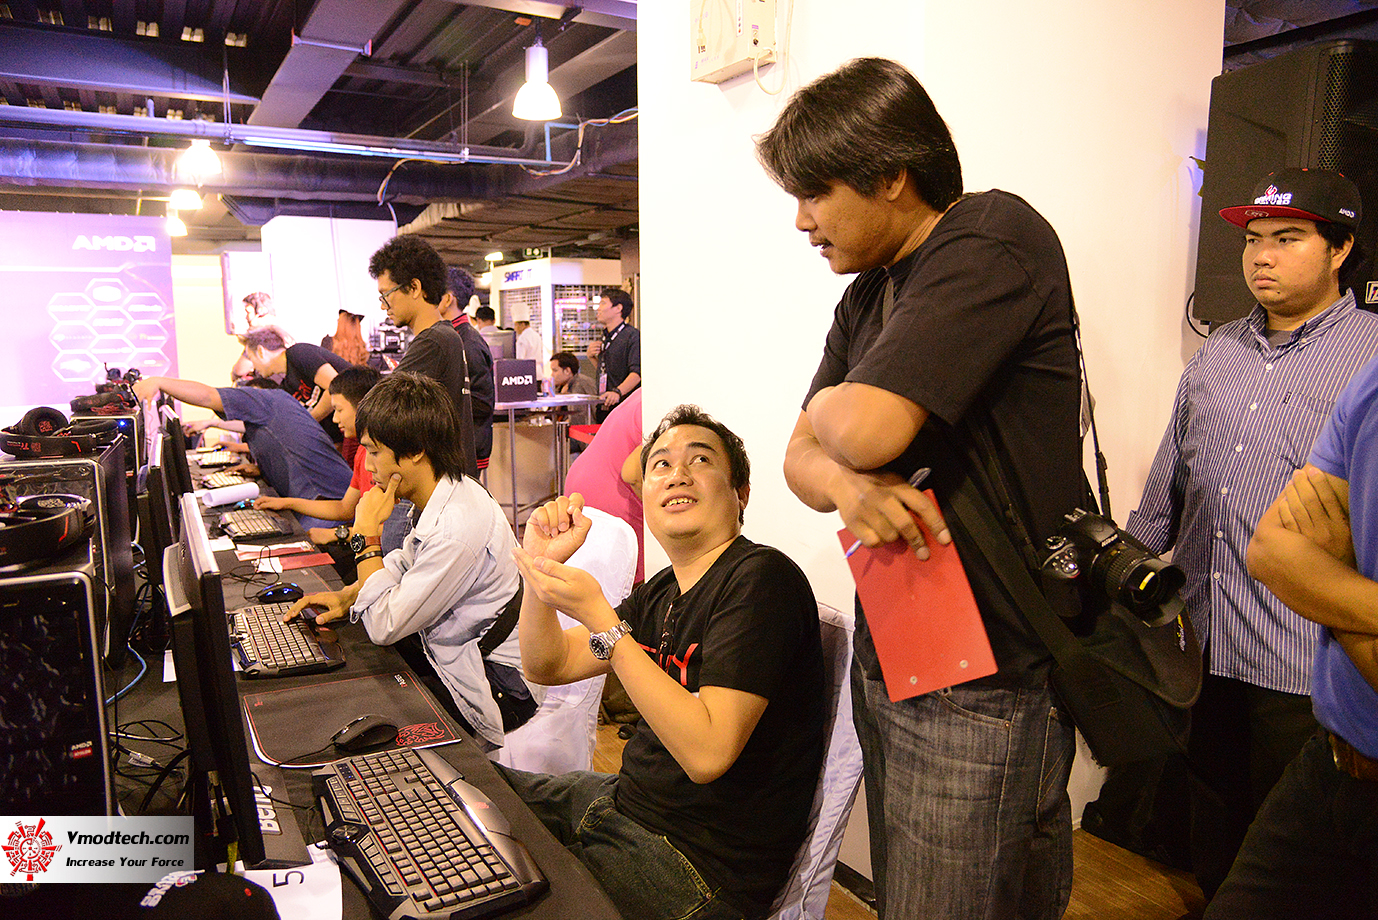 dsc 6724 AMD OMG! Party 2015 (AMD Overclock Modding Gaming Party 2015)